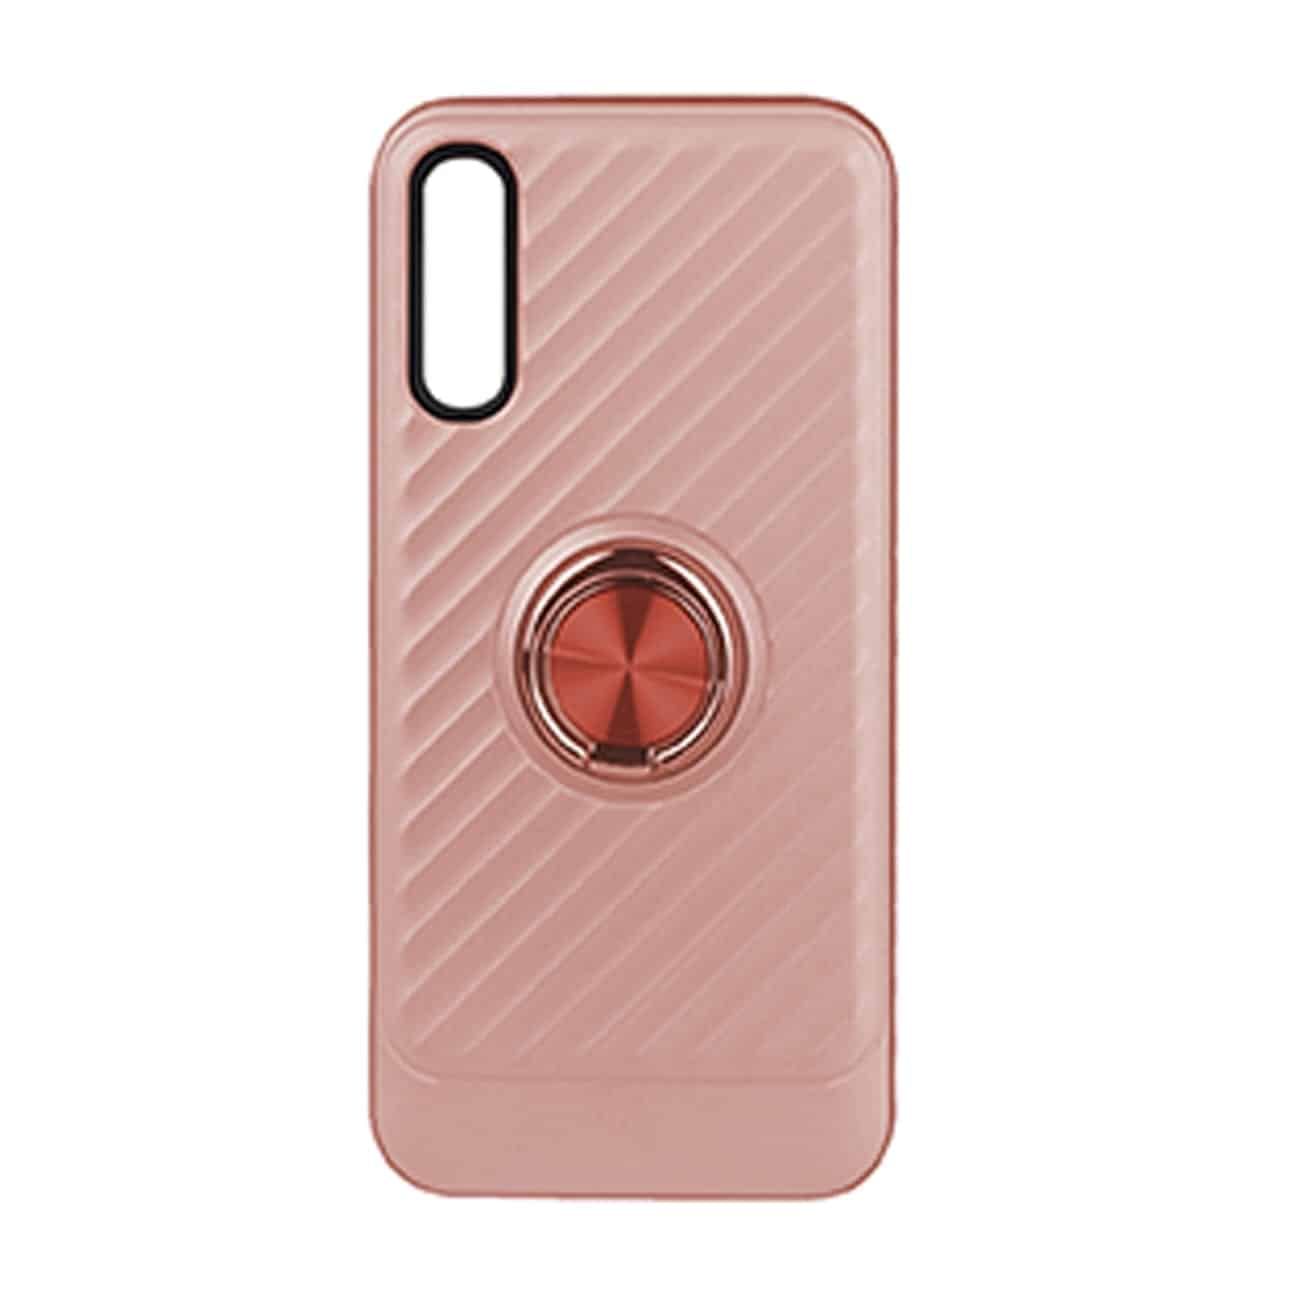 SAMSUNG GALAXY A70 Case with Ring Holder InRose Gold